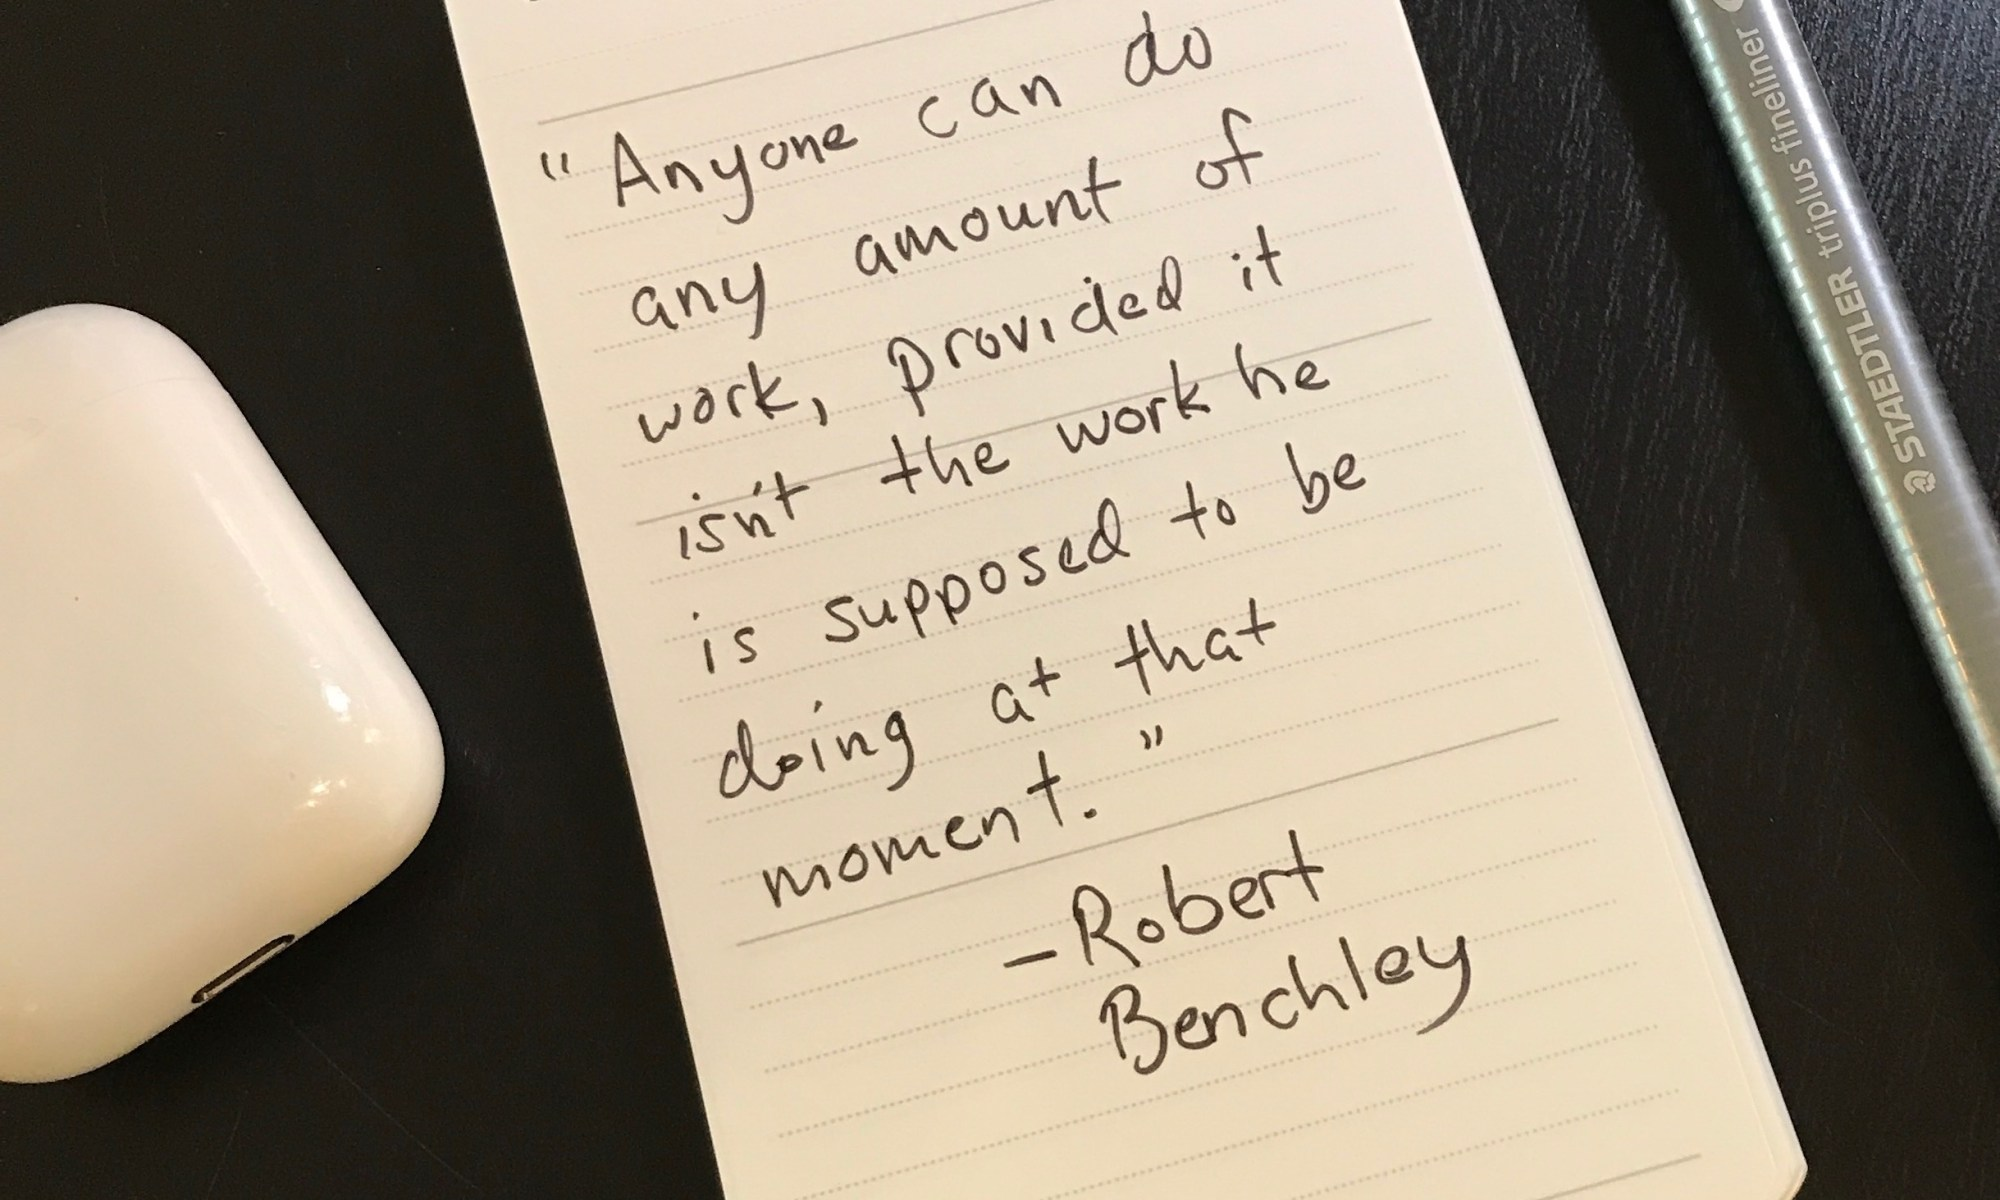 2017 06 27 quote of robert benchley hand written by julian gude IMG_4187.jpg